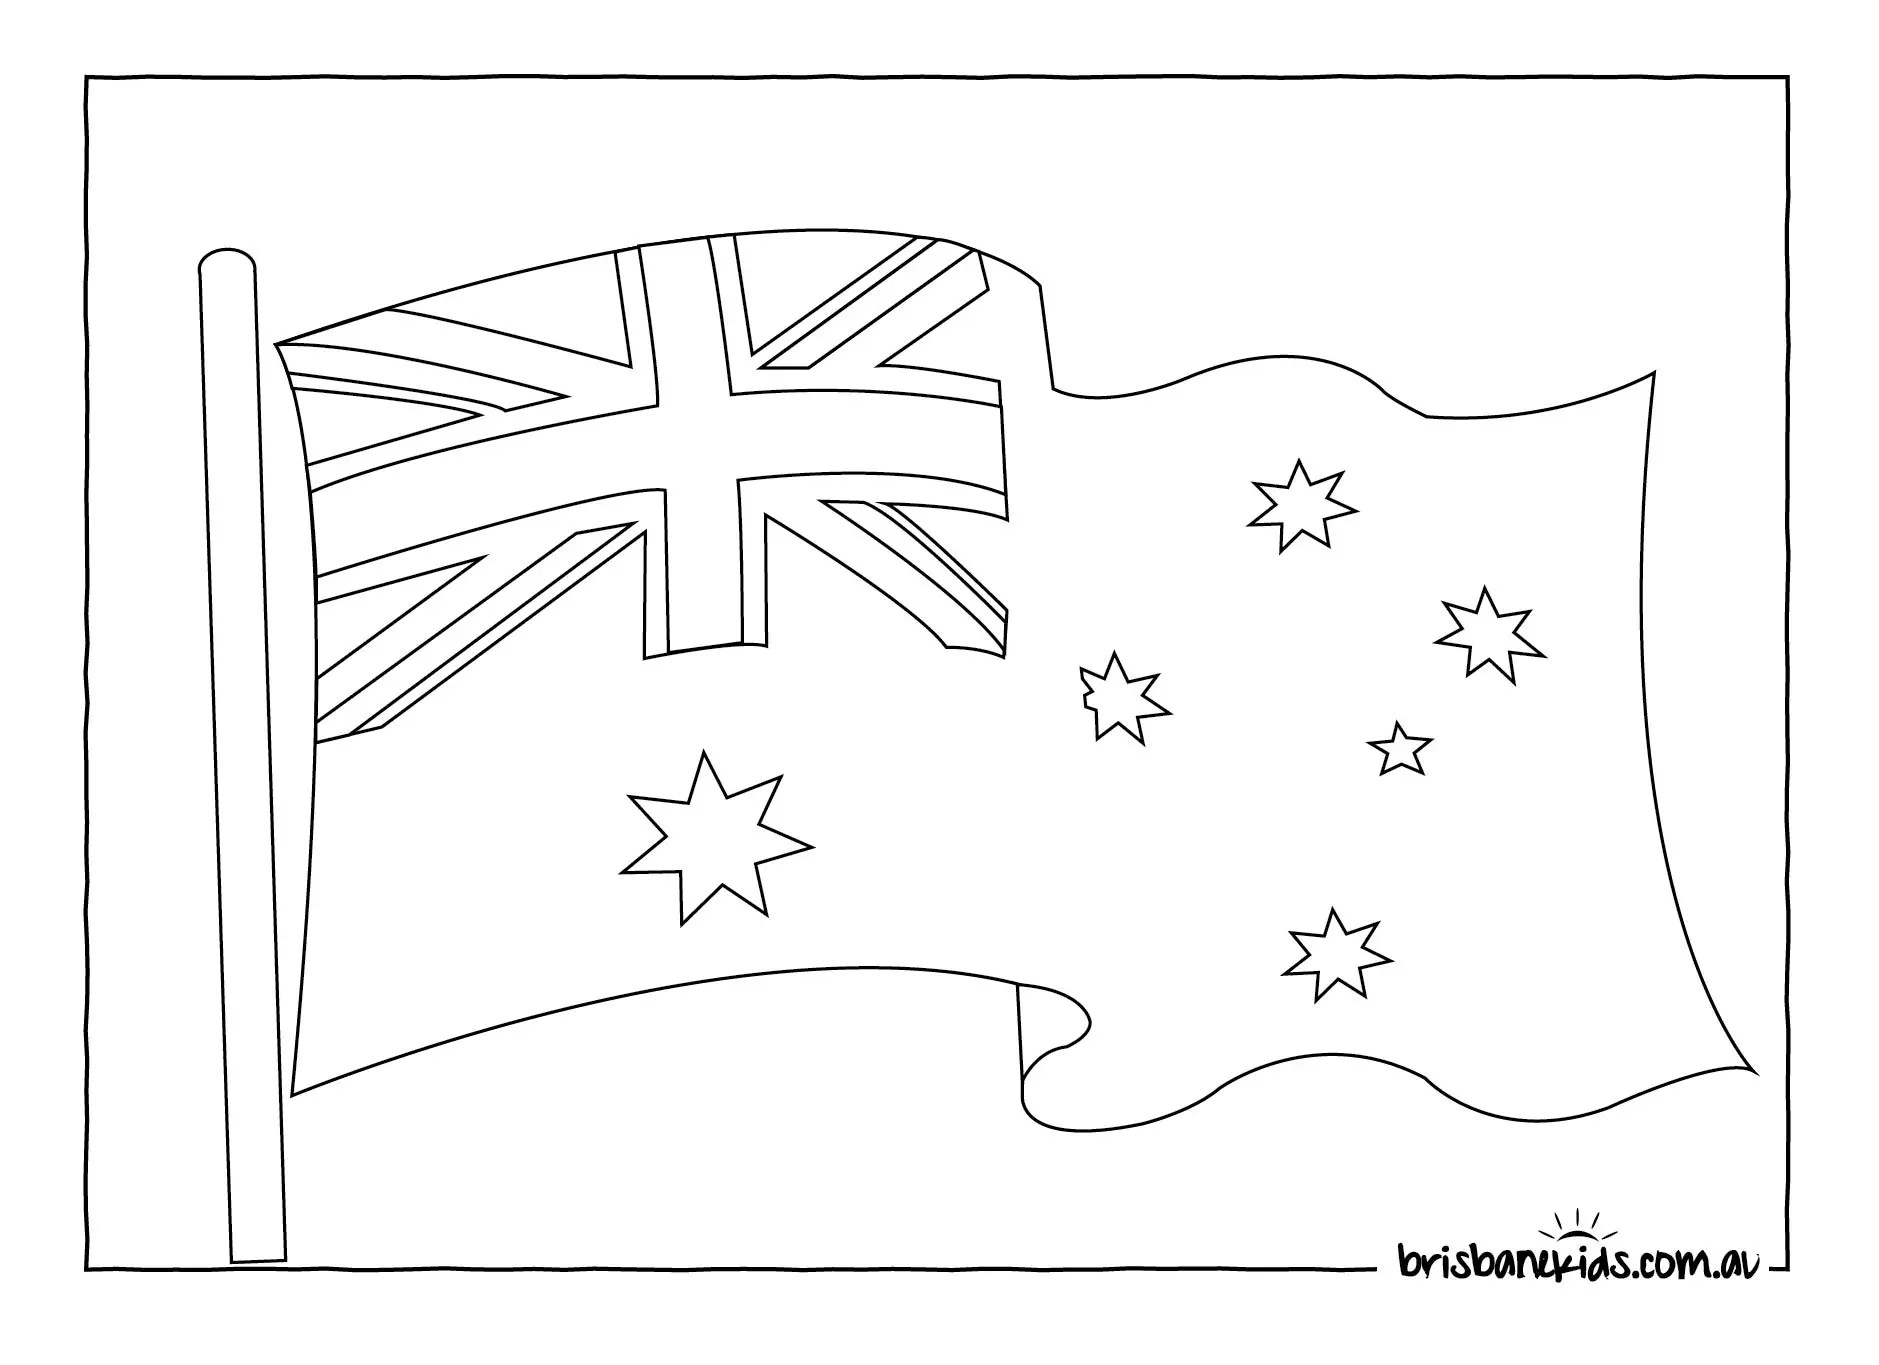 Australia Day Colouring Pages • Brisbane Kids